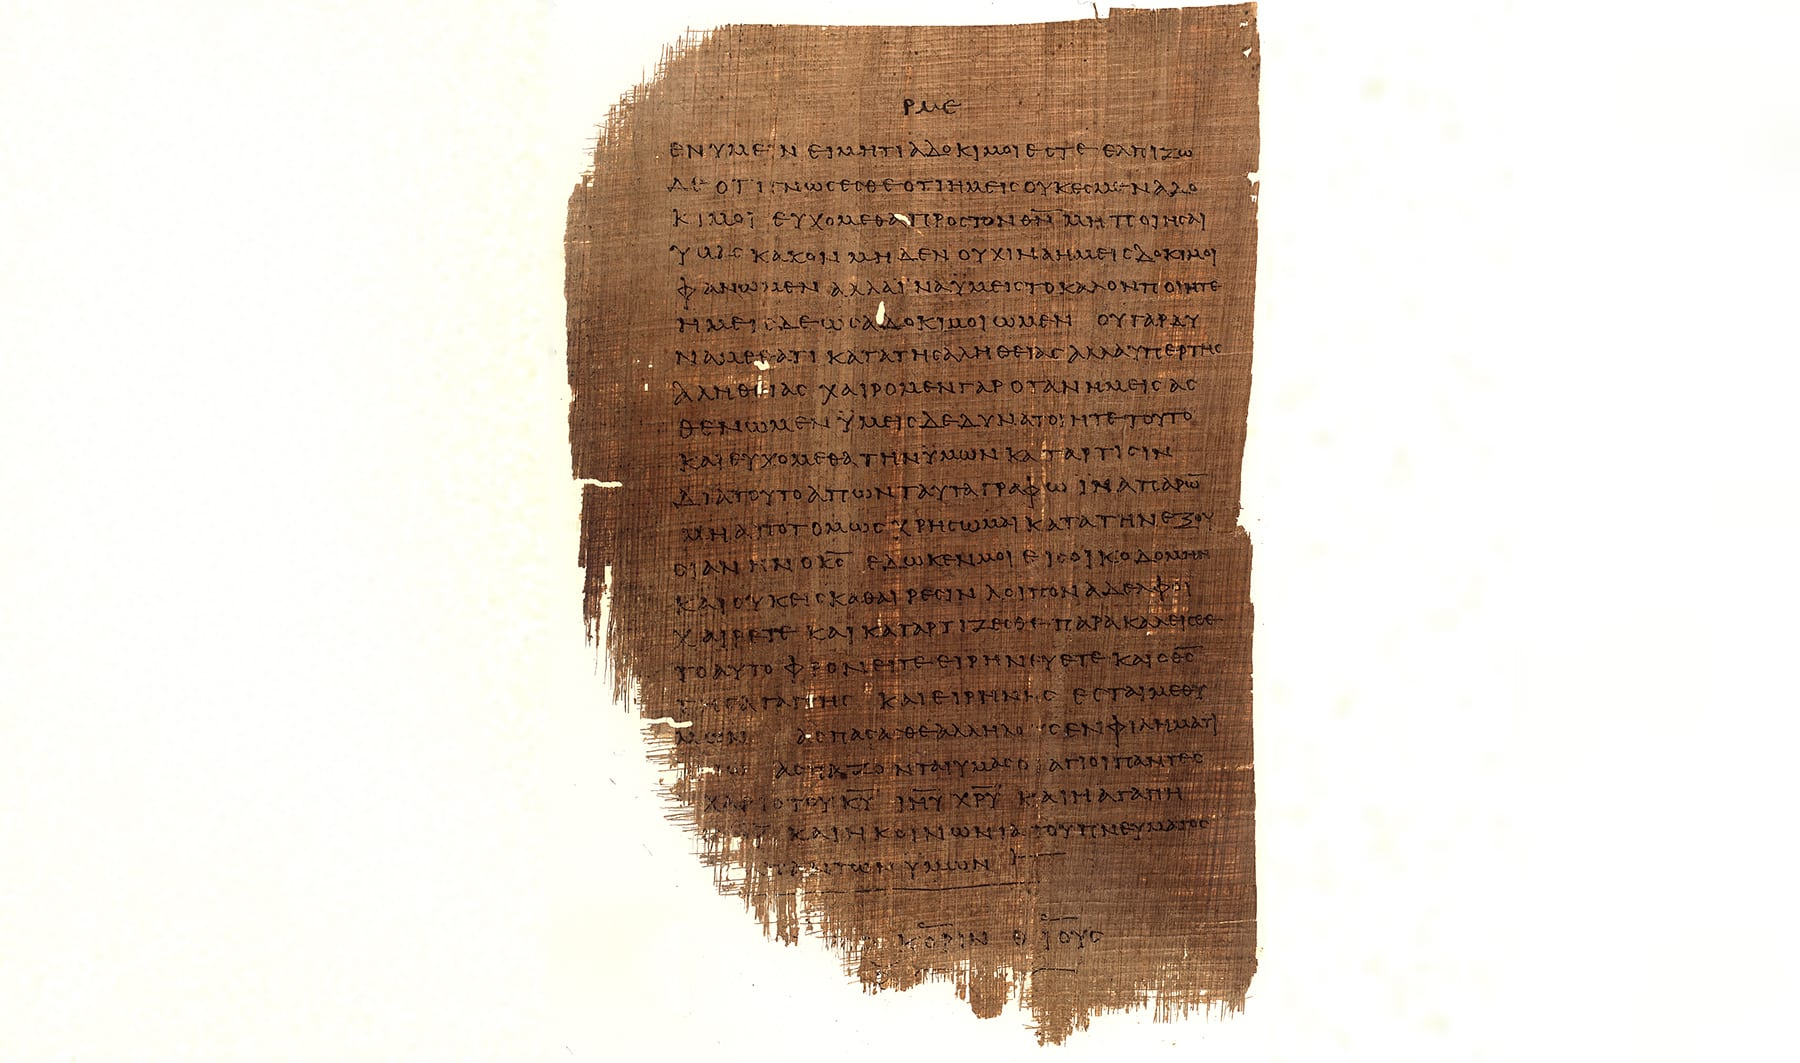 Image from papyrus of Epistles of St. Paul